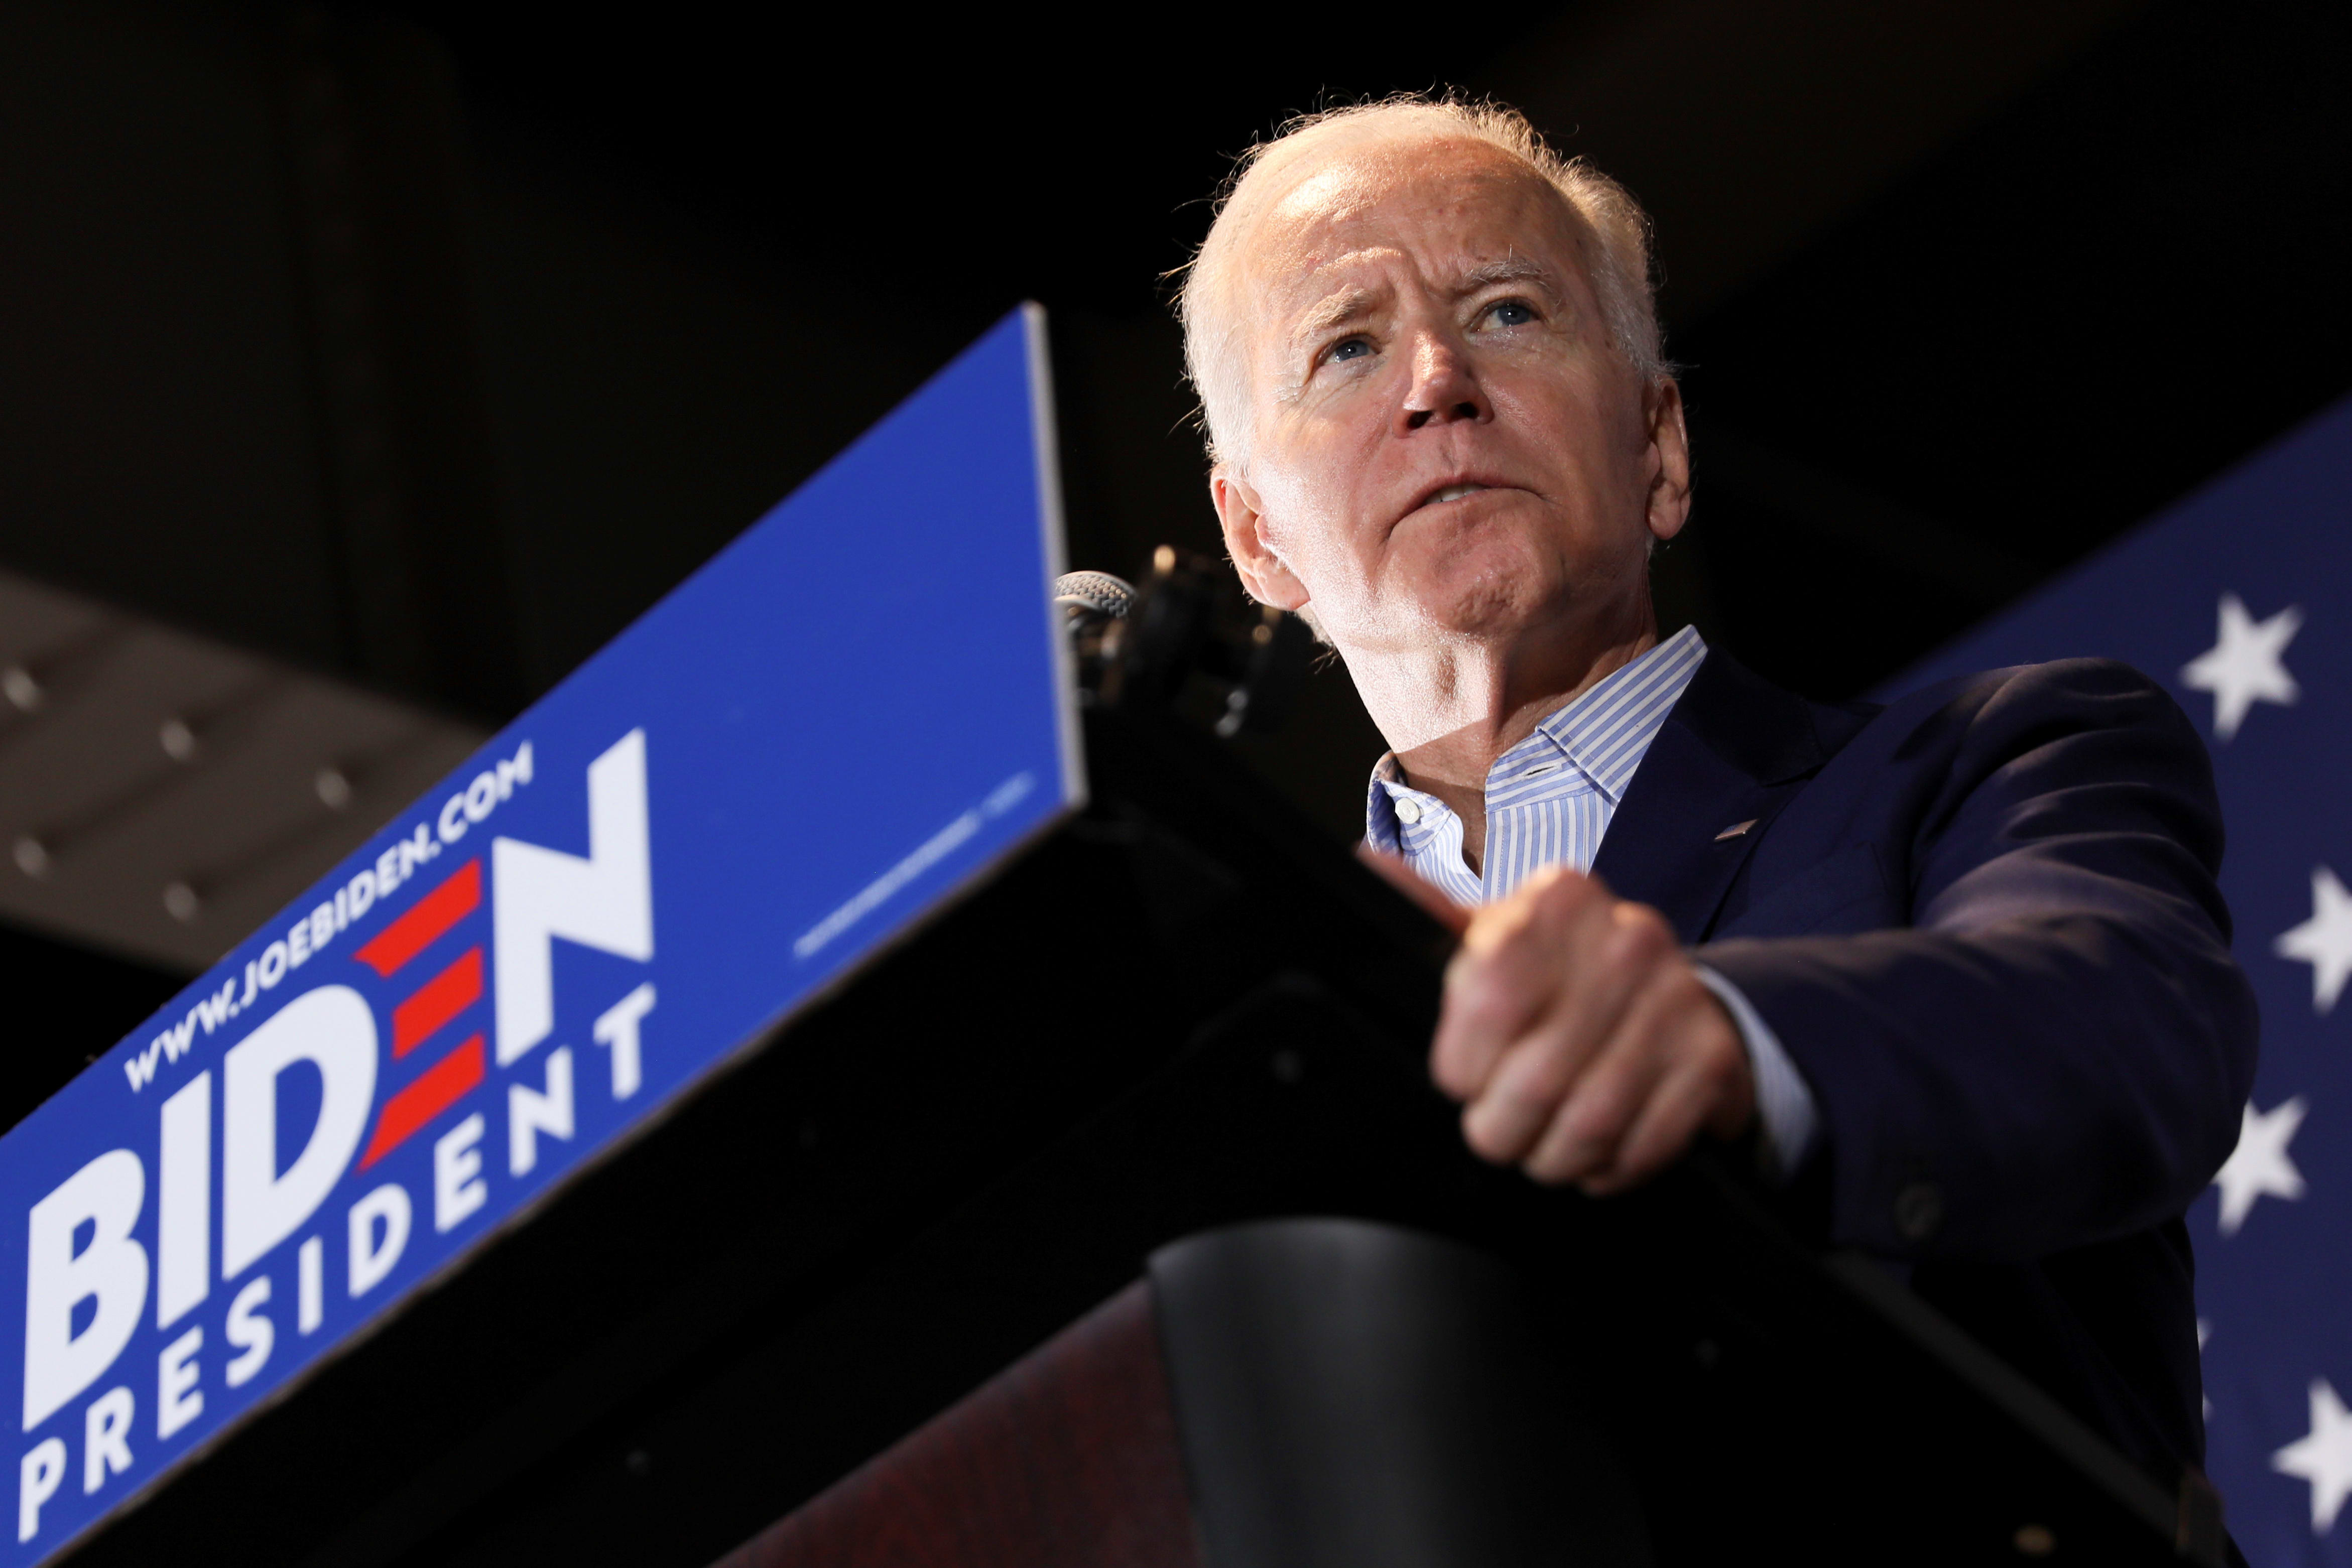 Biden argues 'Medicare for All' supporters want to get rid of Obamacare